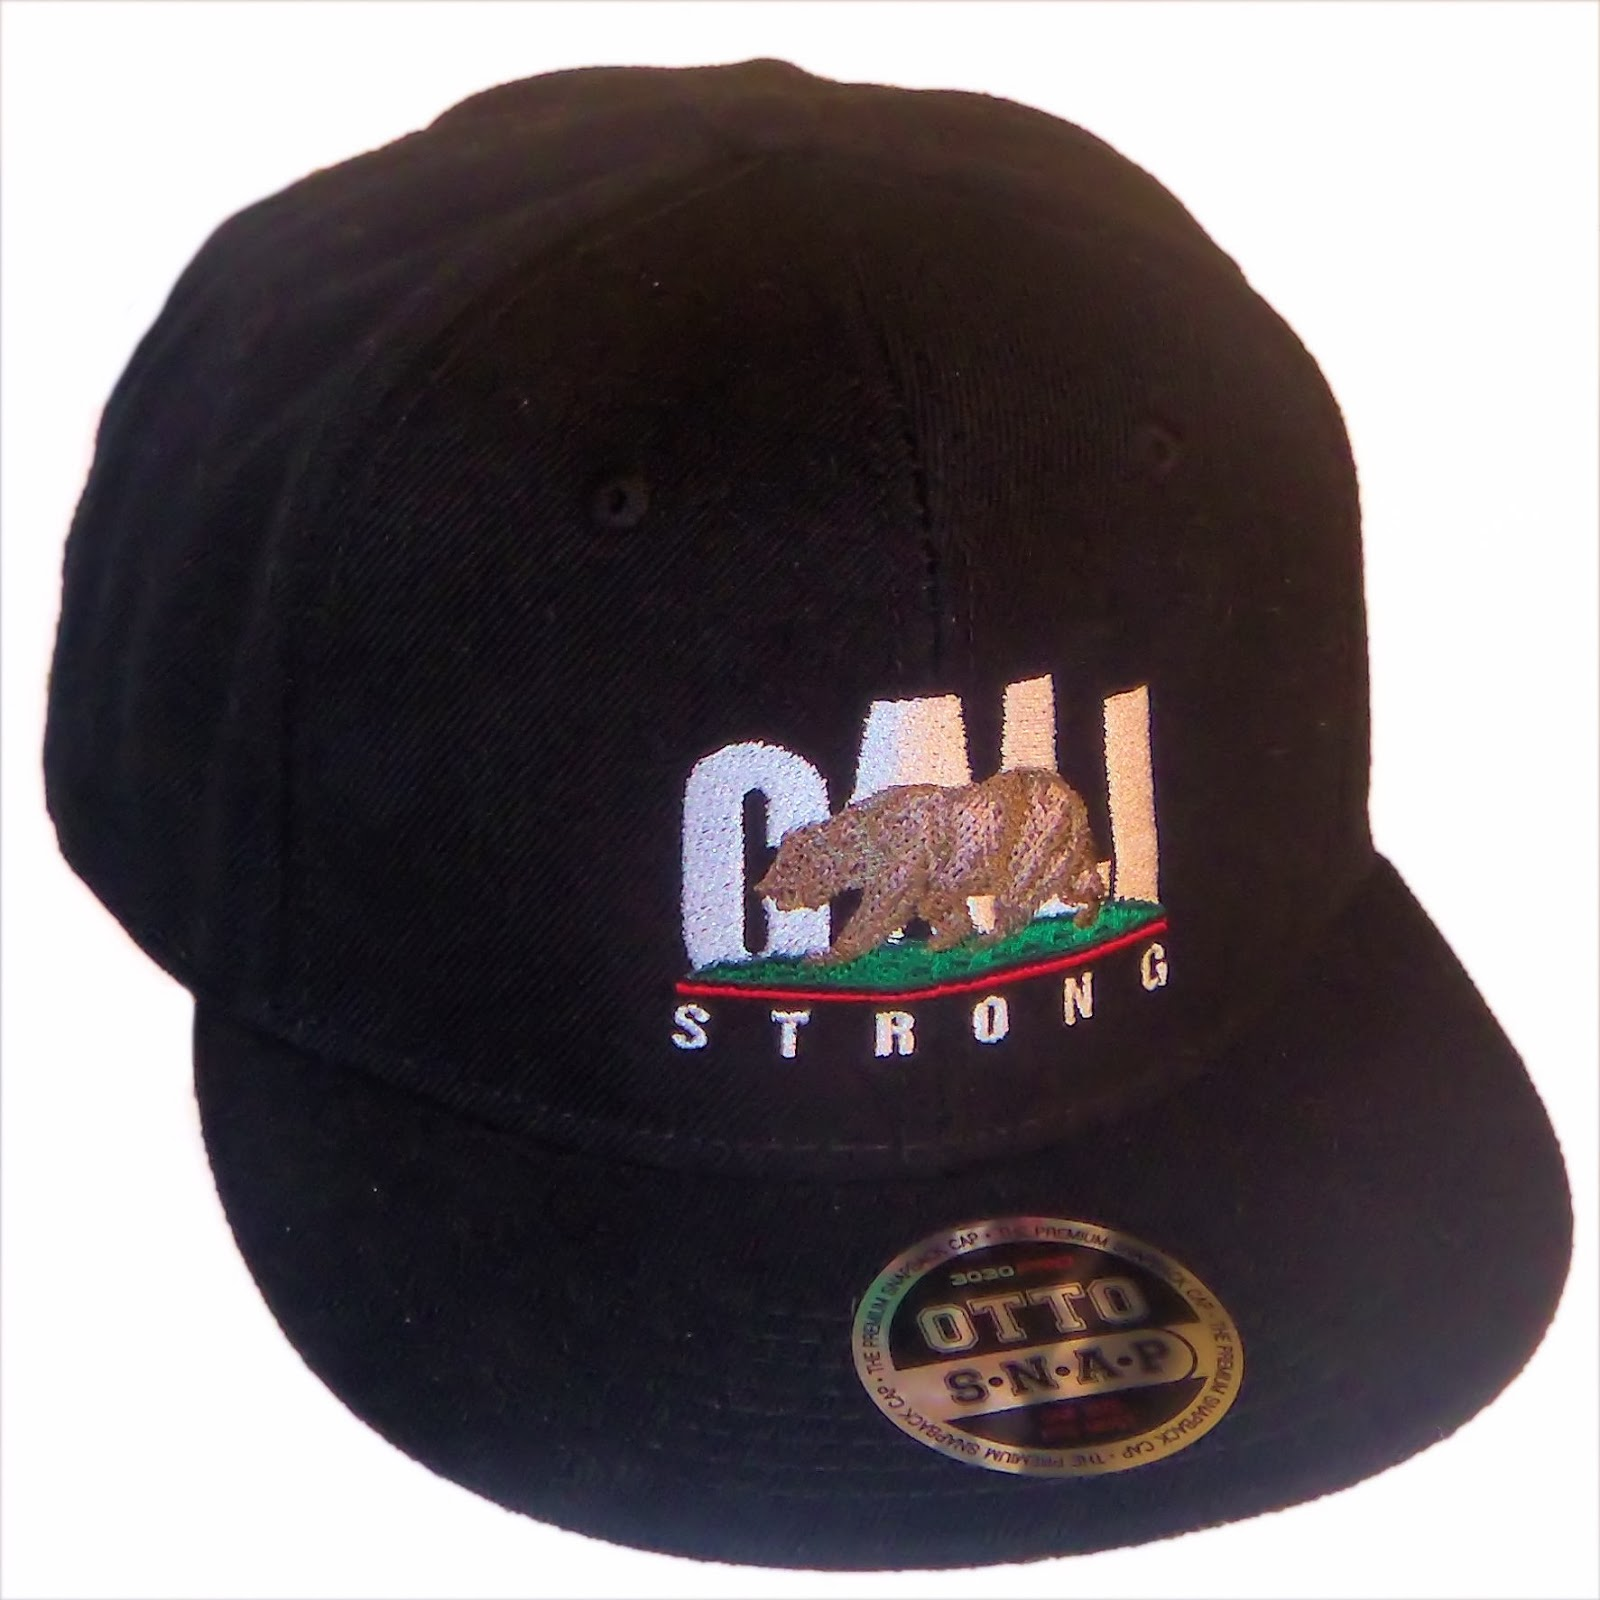 CALI Strong Flat Bill Snapback Cap Rare Edition V 1.0